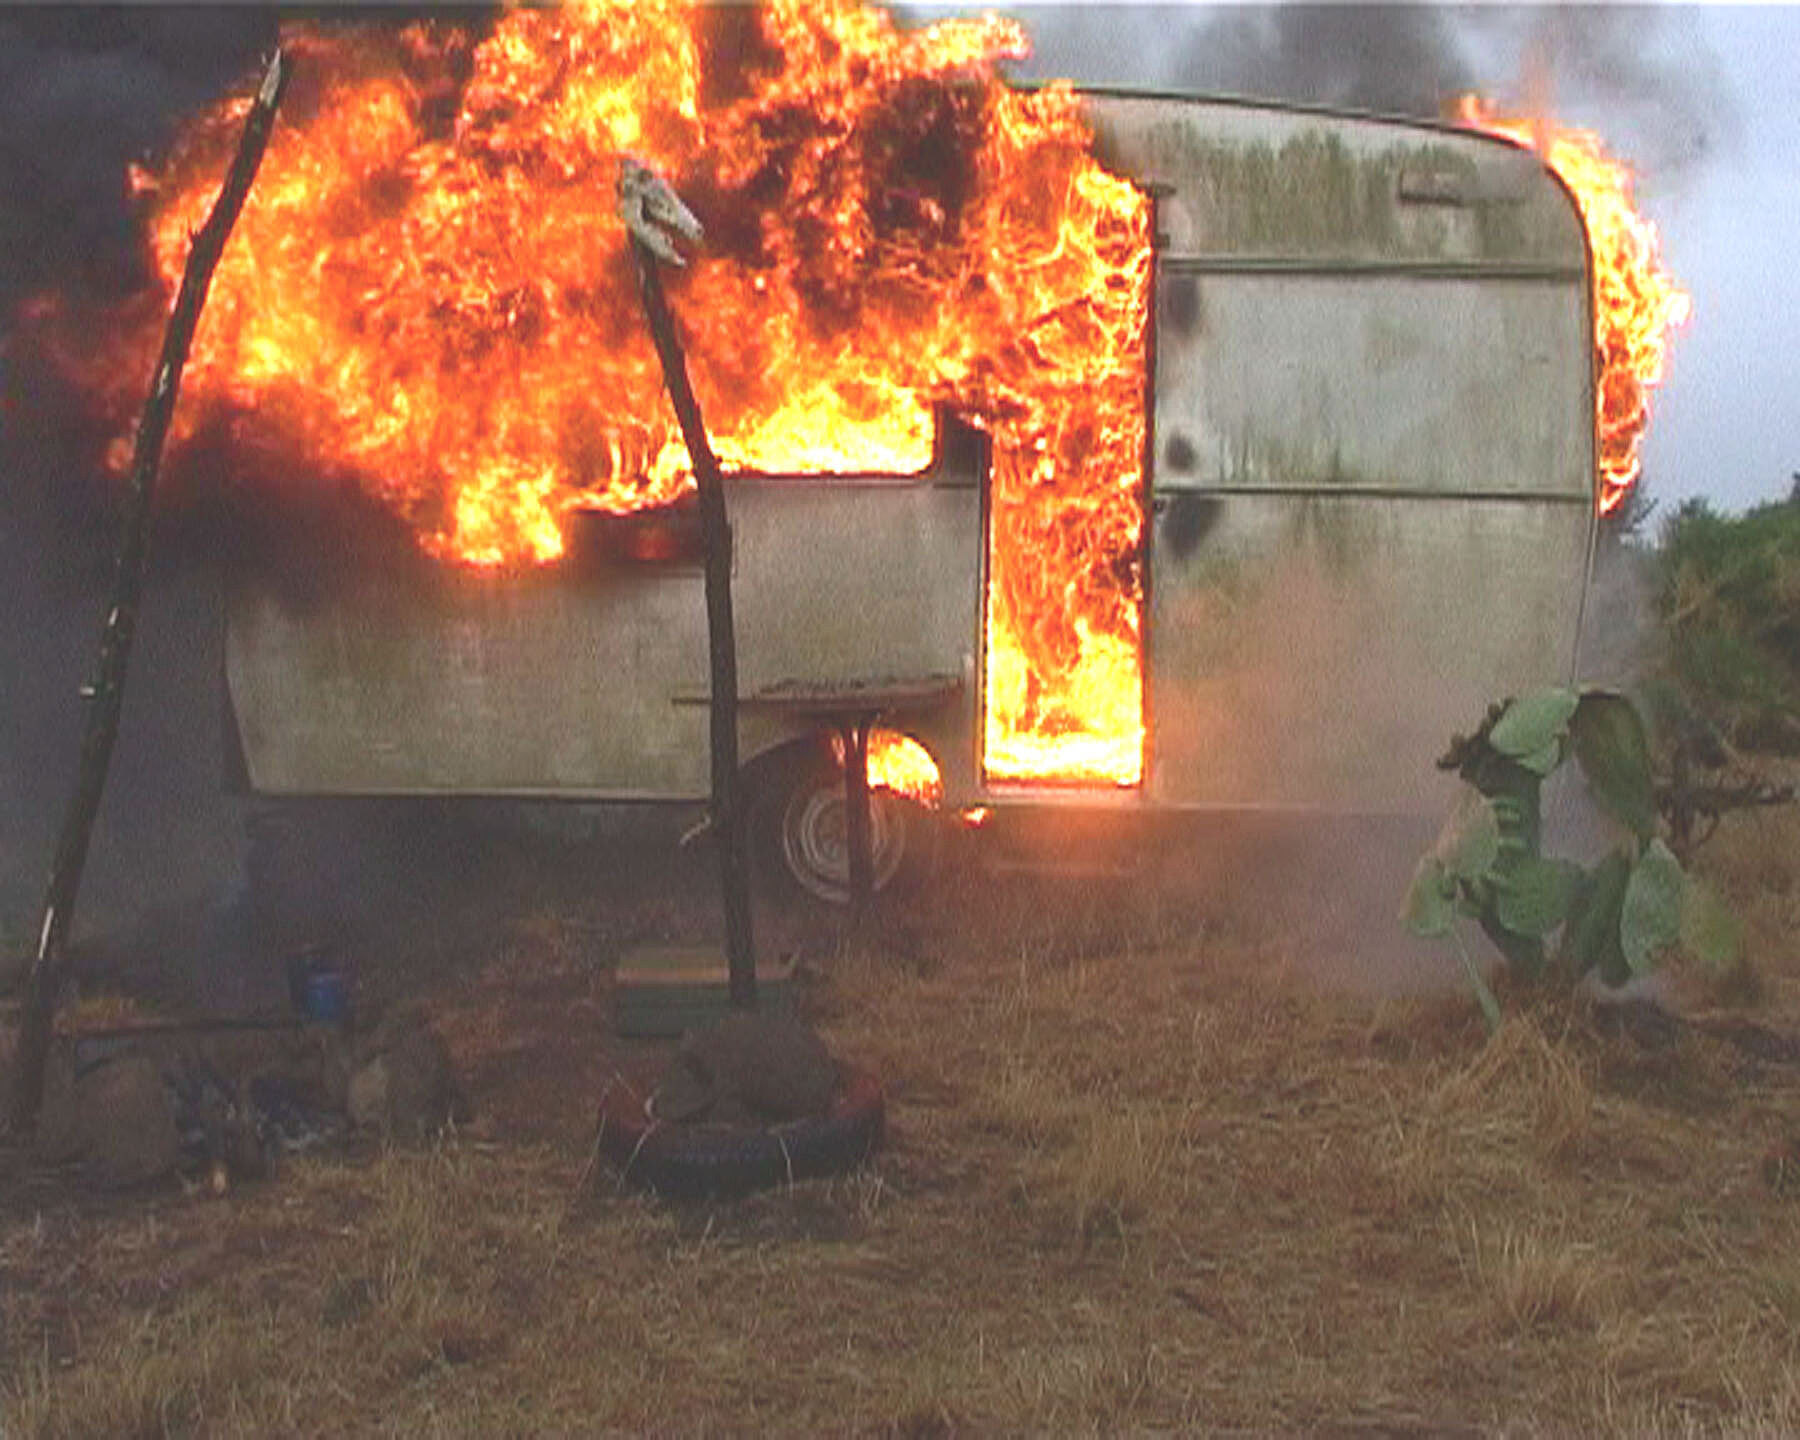 Film still of a burning van.